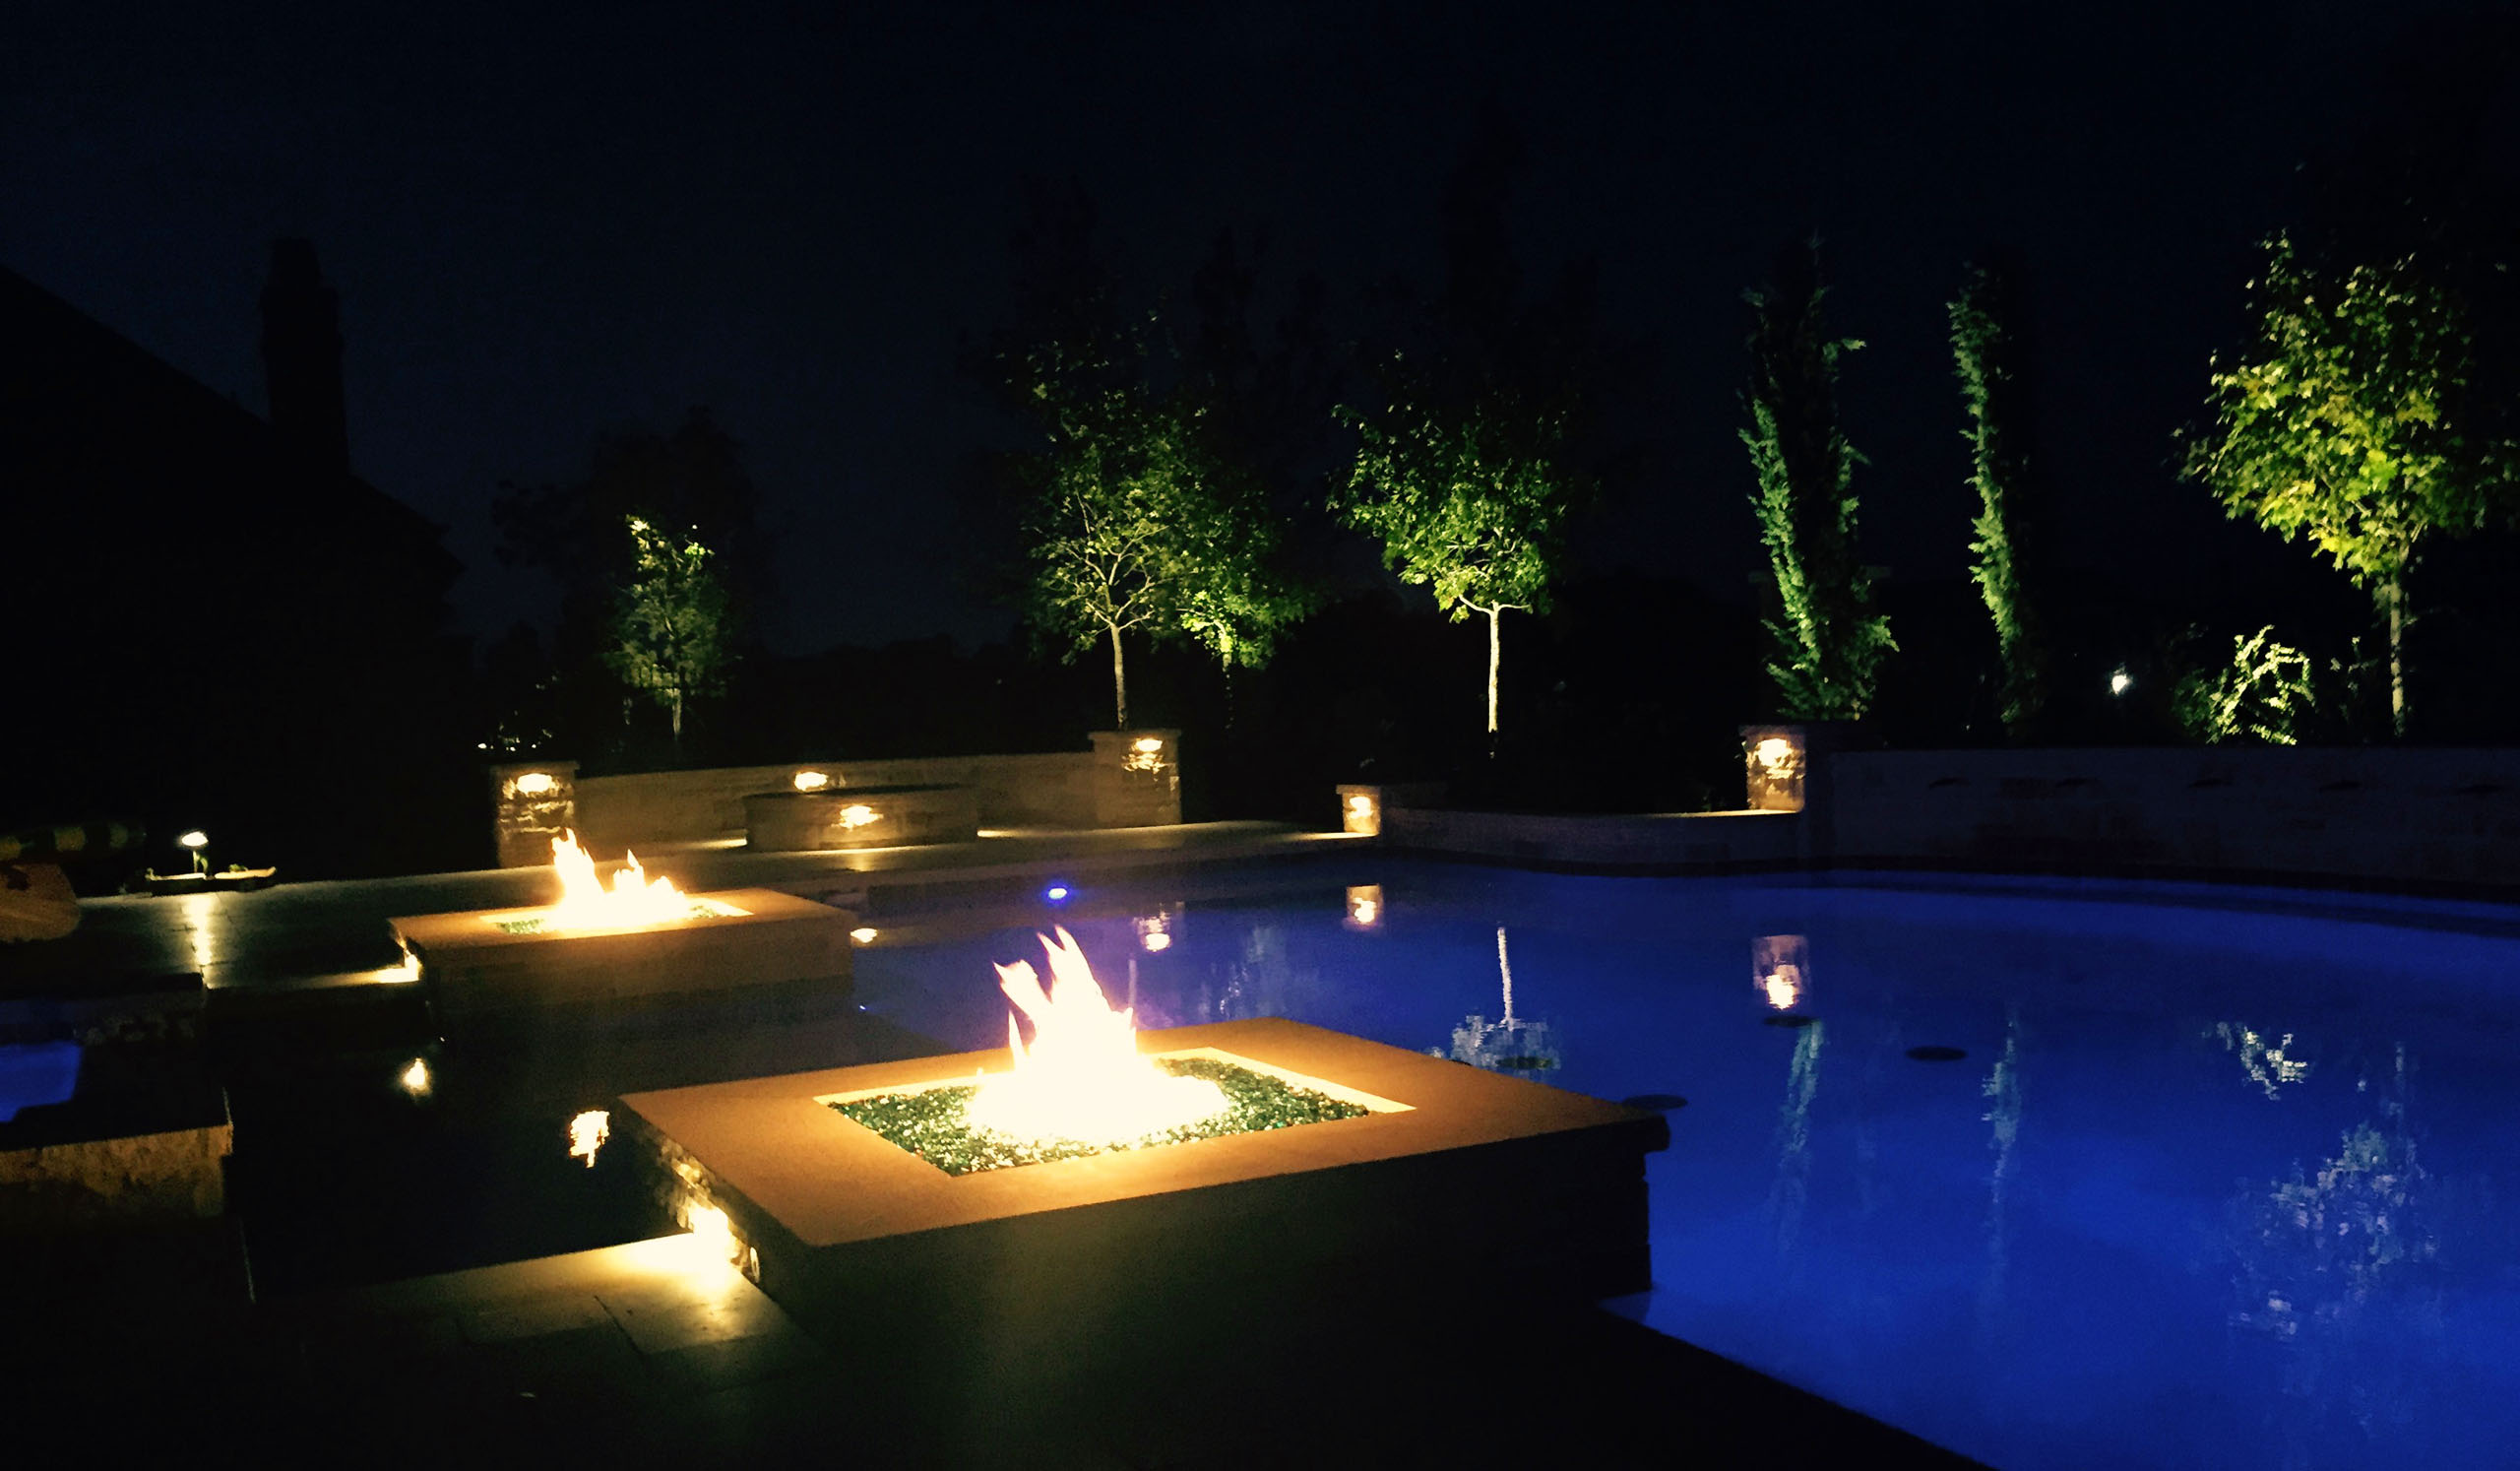 Allen landscape lighting installation dallas landscape lighting frisco landscape lighting and fire features aloadofball Gallery